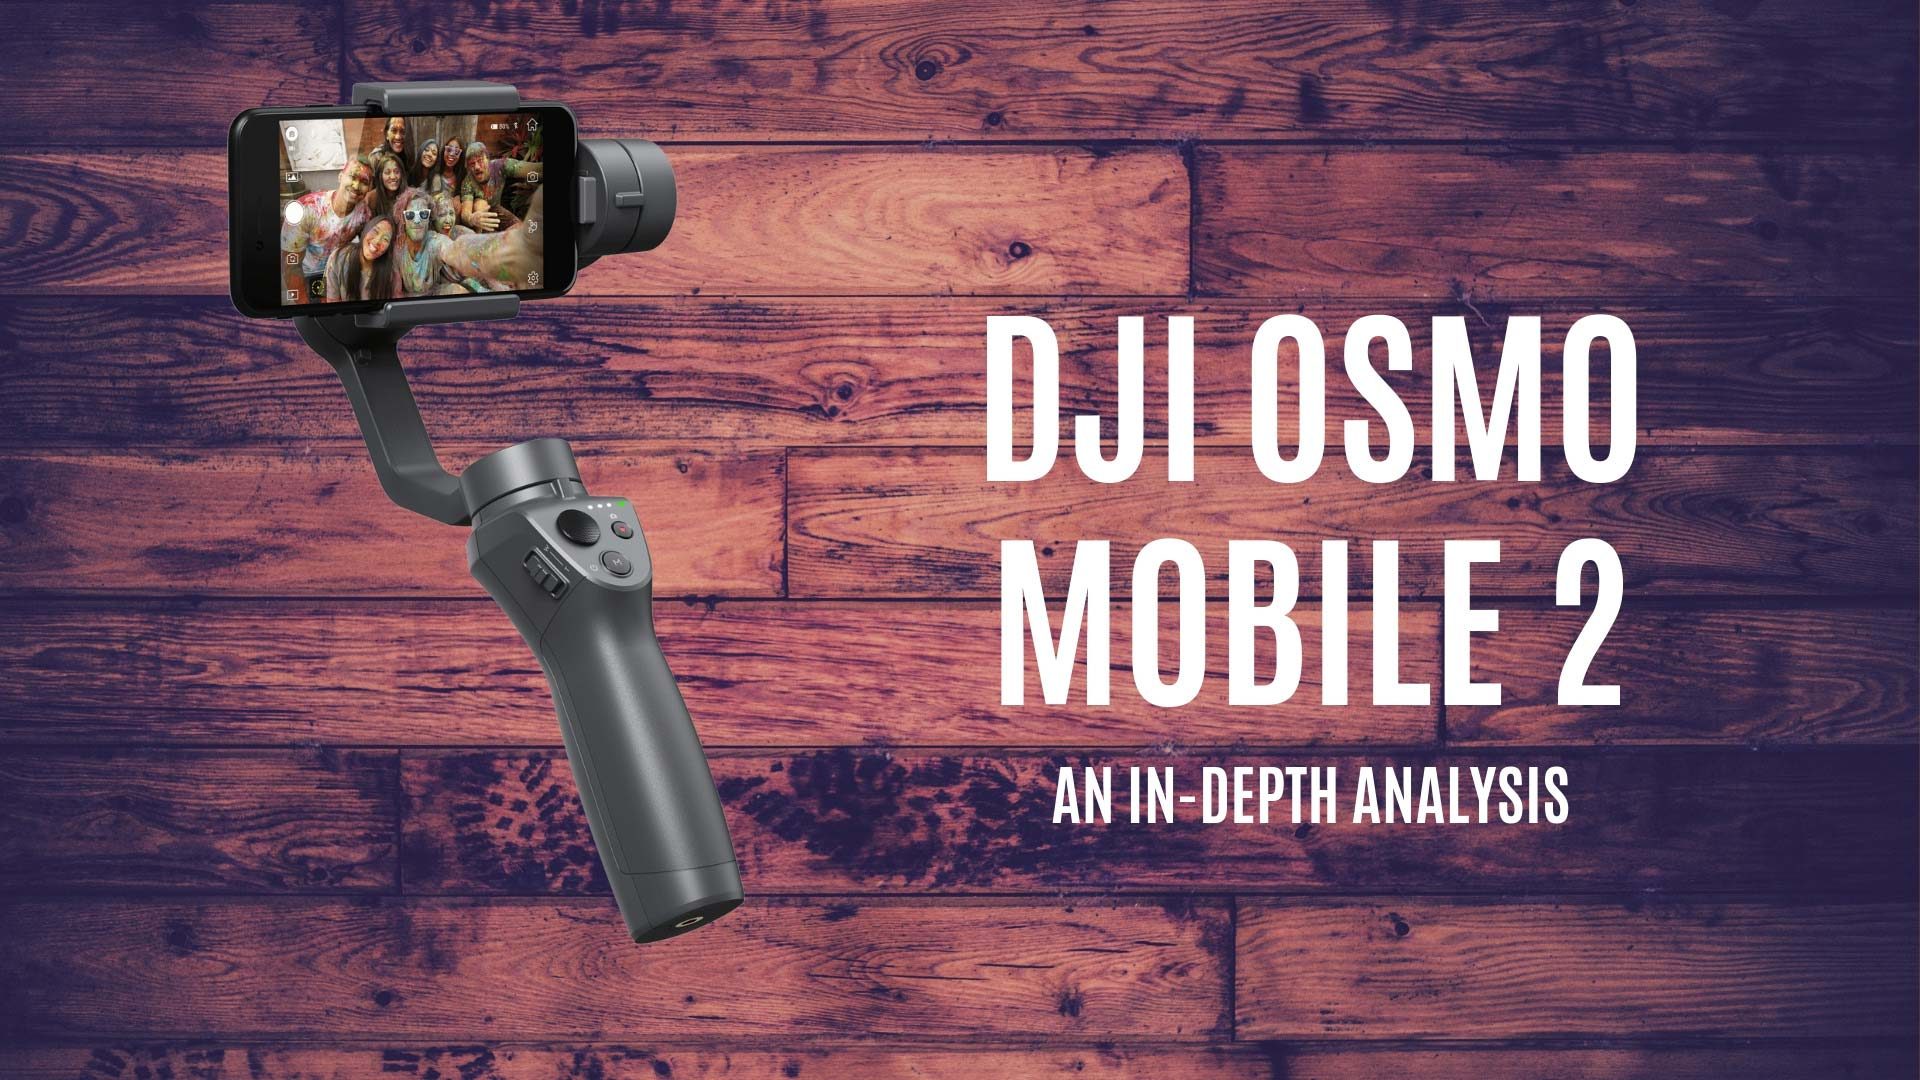 In Depth Analysis of the DJI Osmo Mobile 2